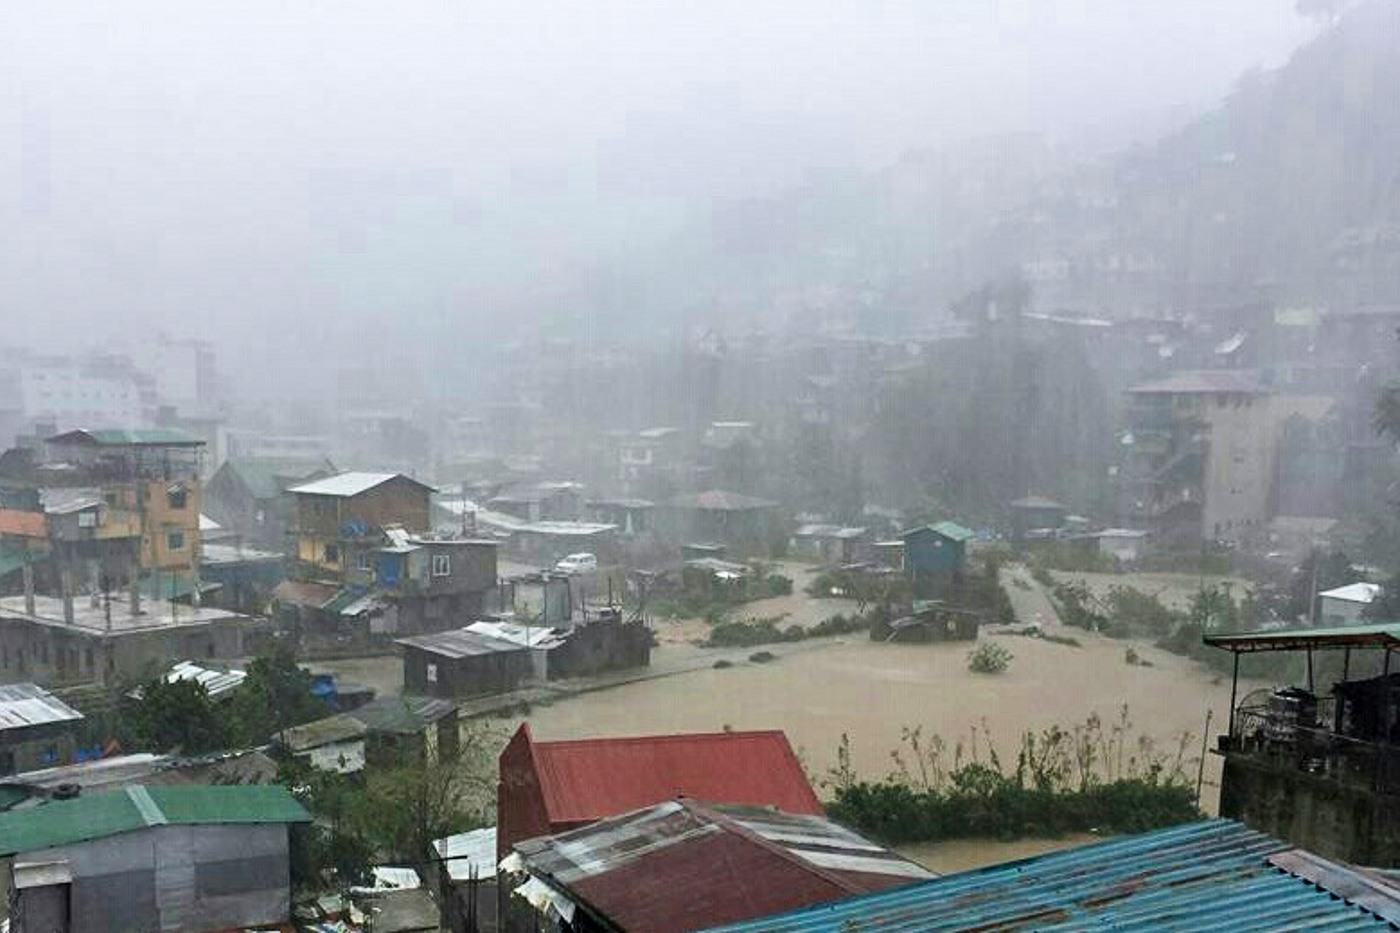 OMPONG. Flooding in Baguio City on September 15, 2018, due to Typhoon Ompong. File photo by Mau Victa/Rapple